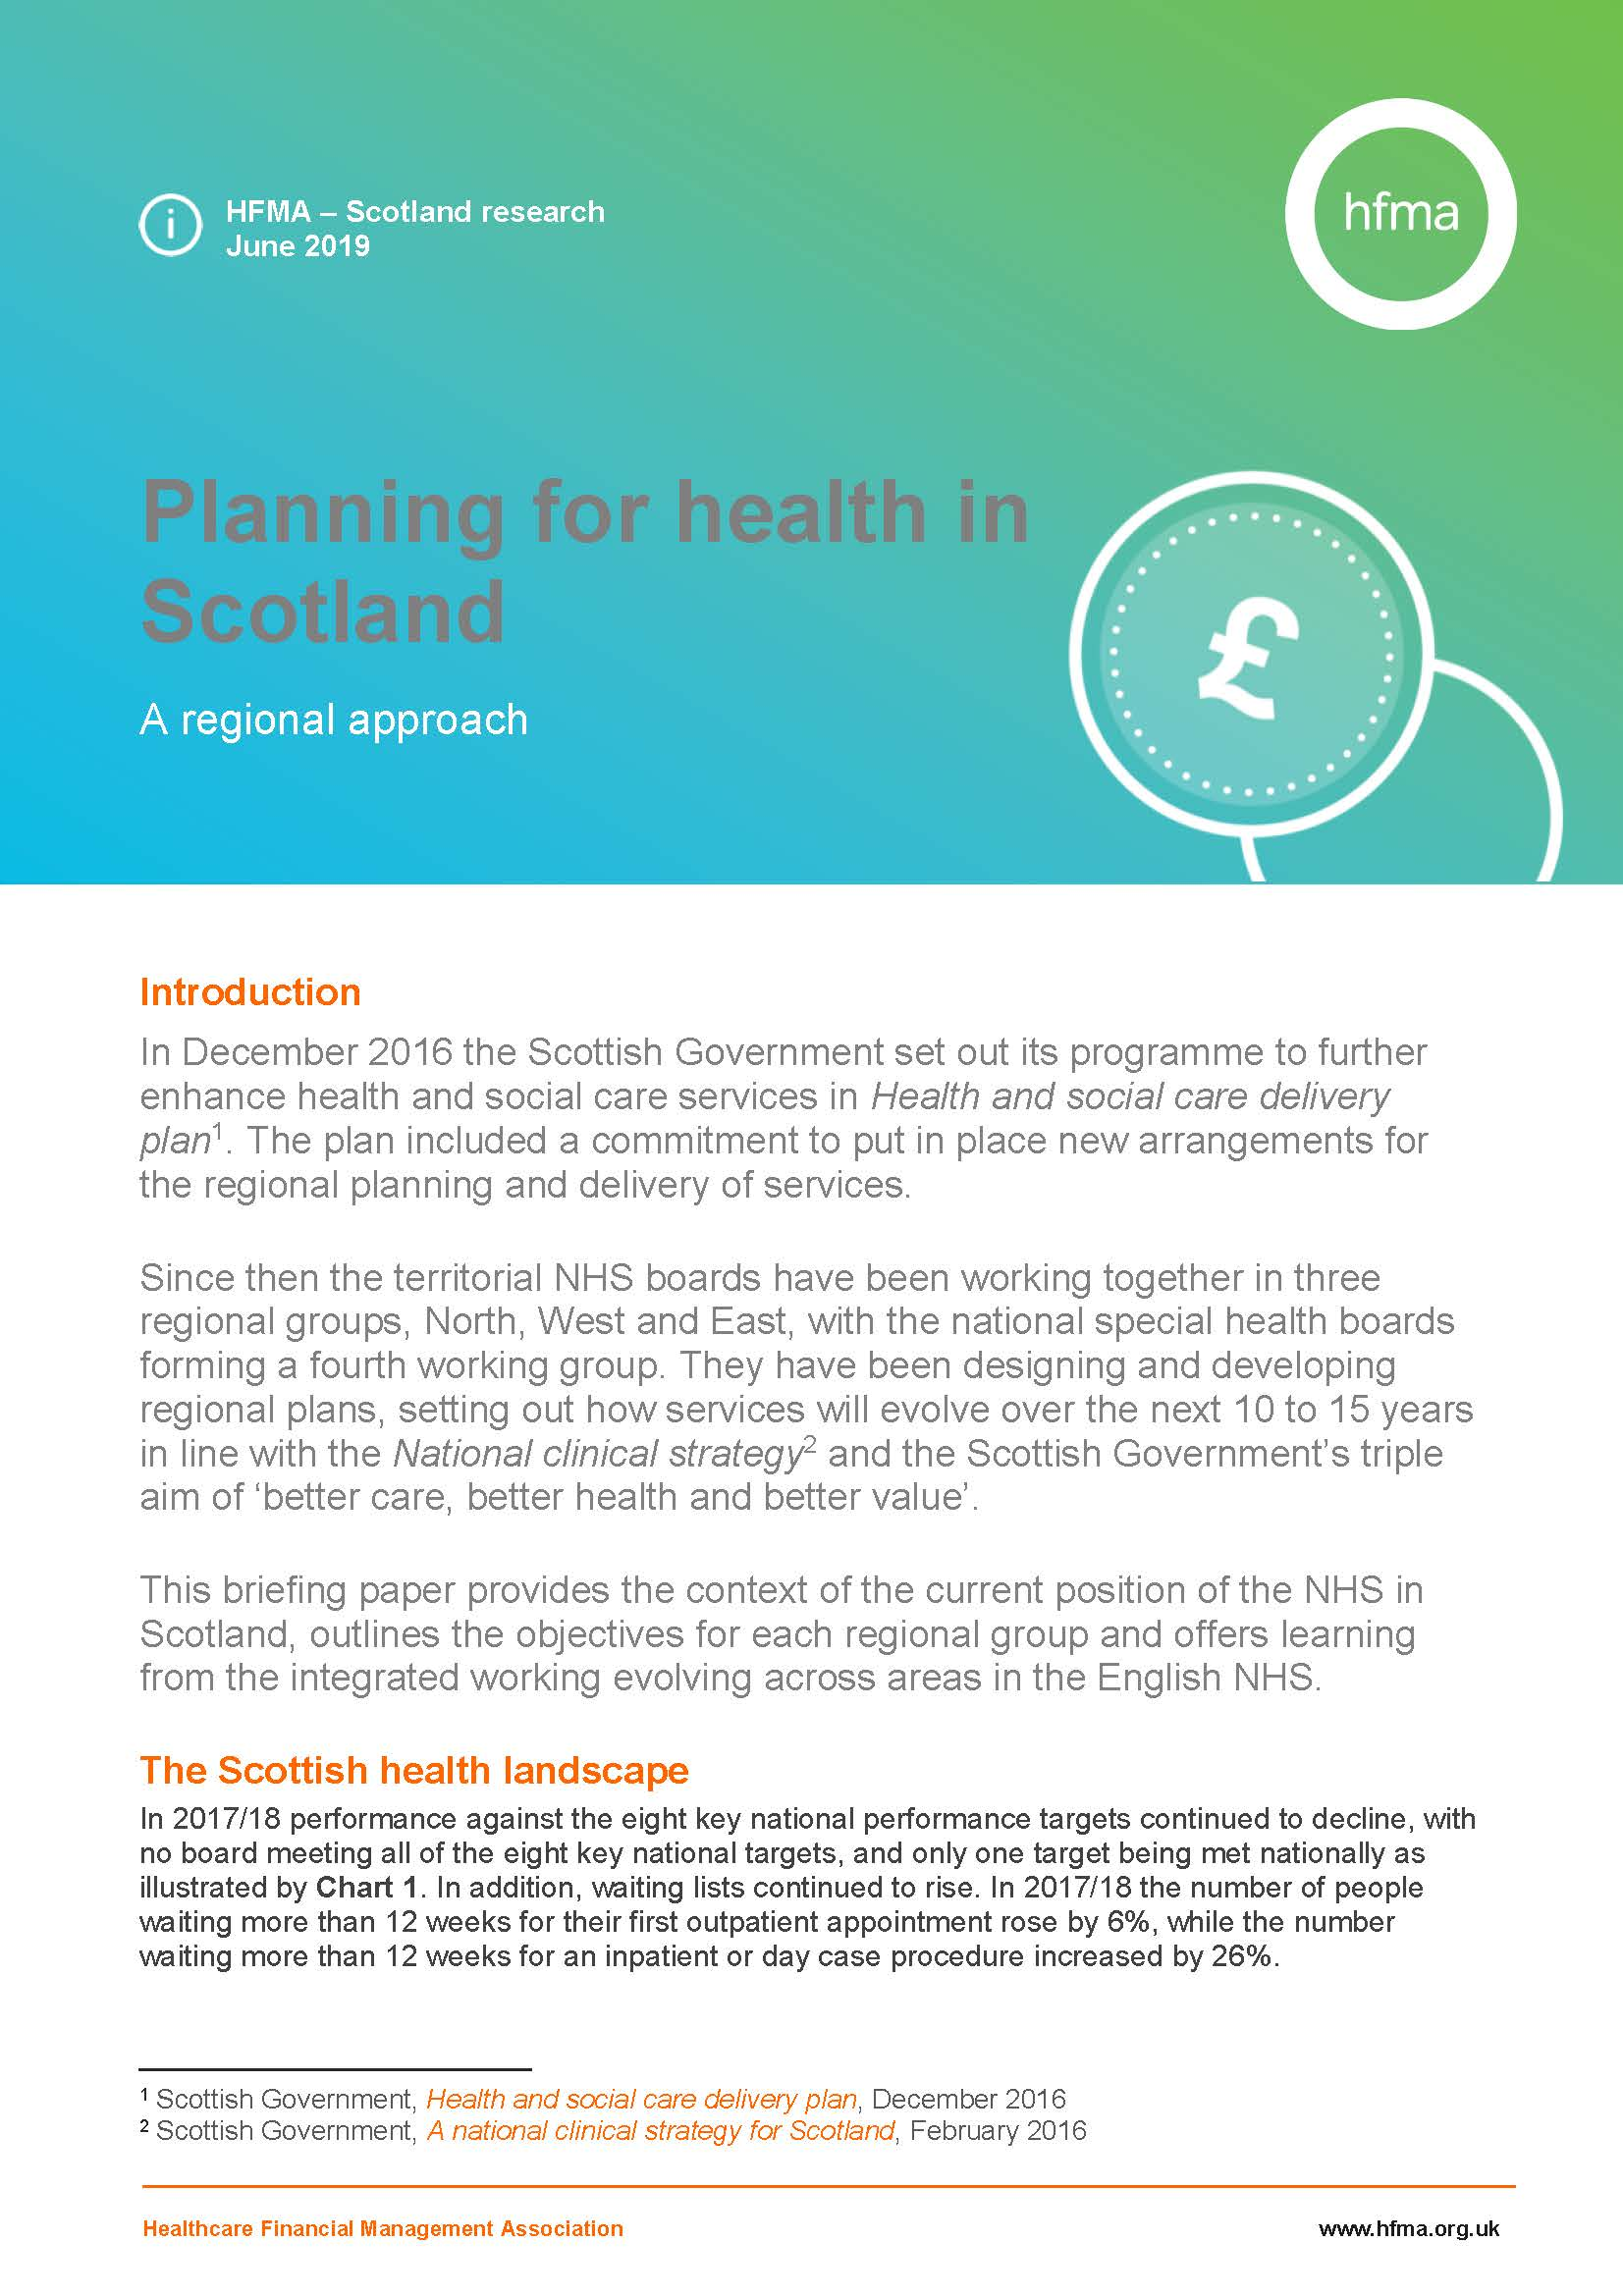 Planning for health in Scotland – a regional approach